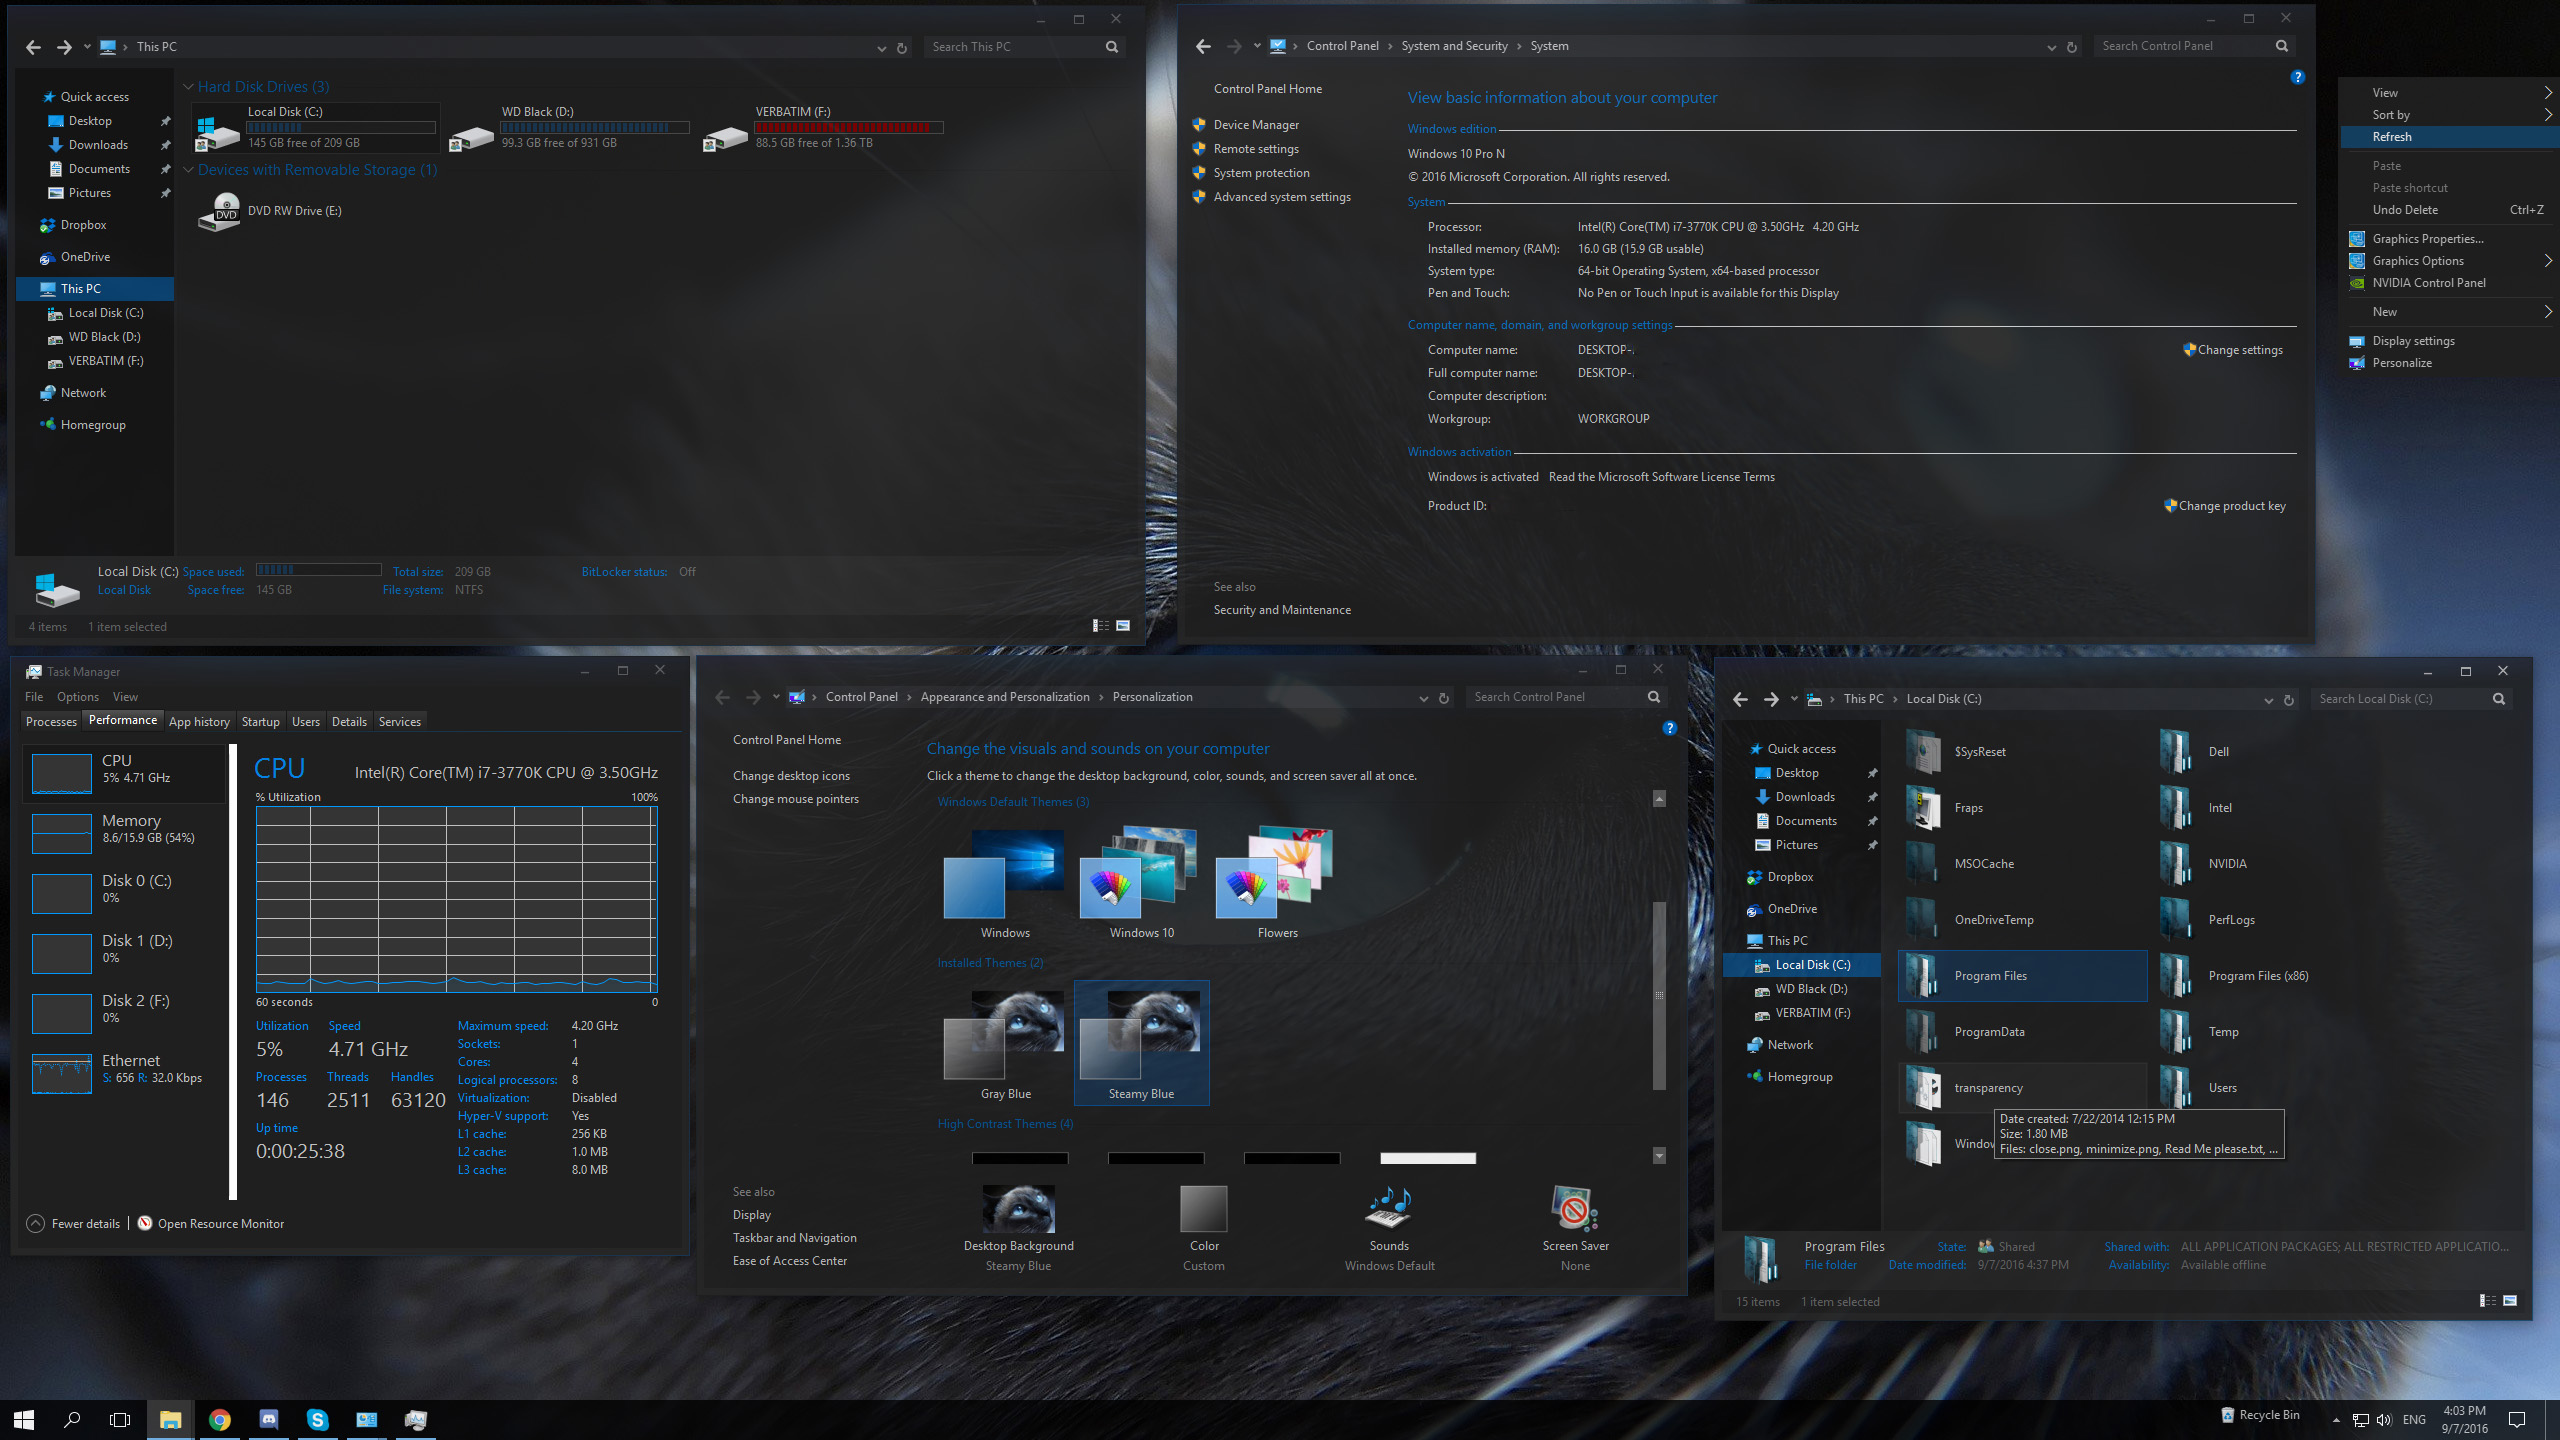 SteamyBlue Windows10 Theme by F3niX69 on DeviantArt